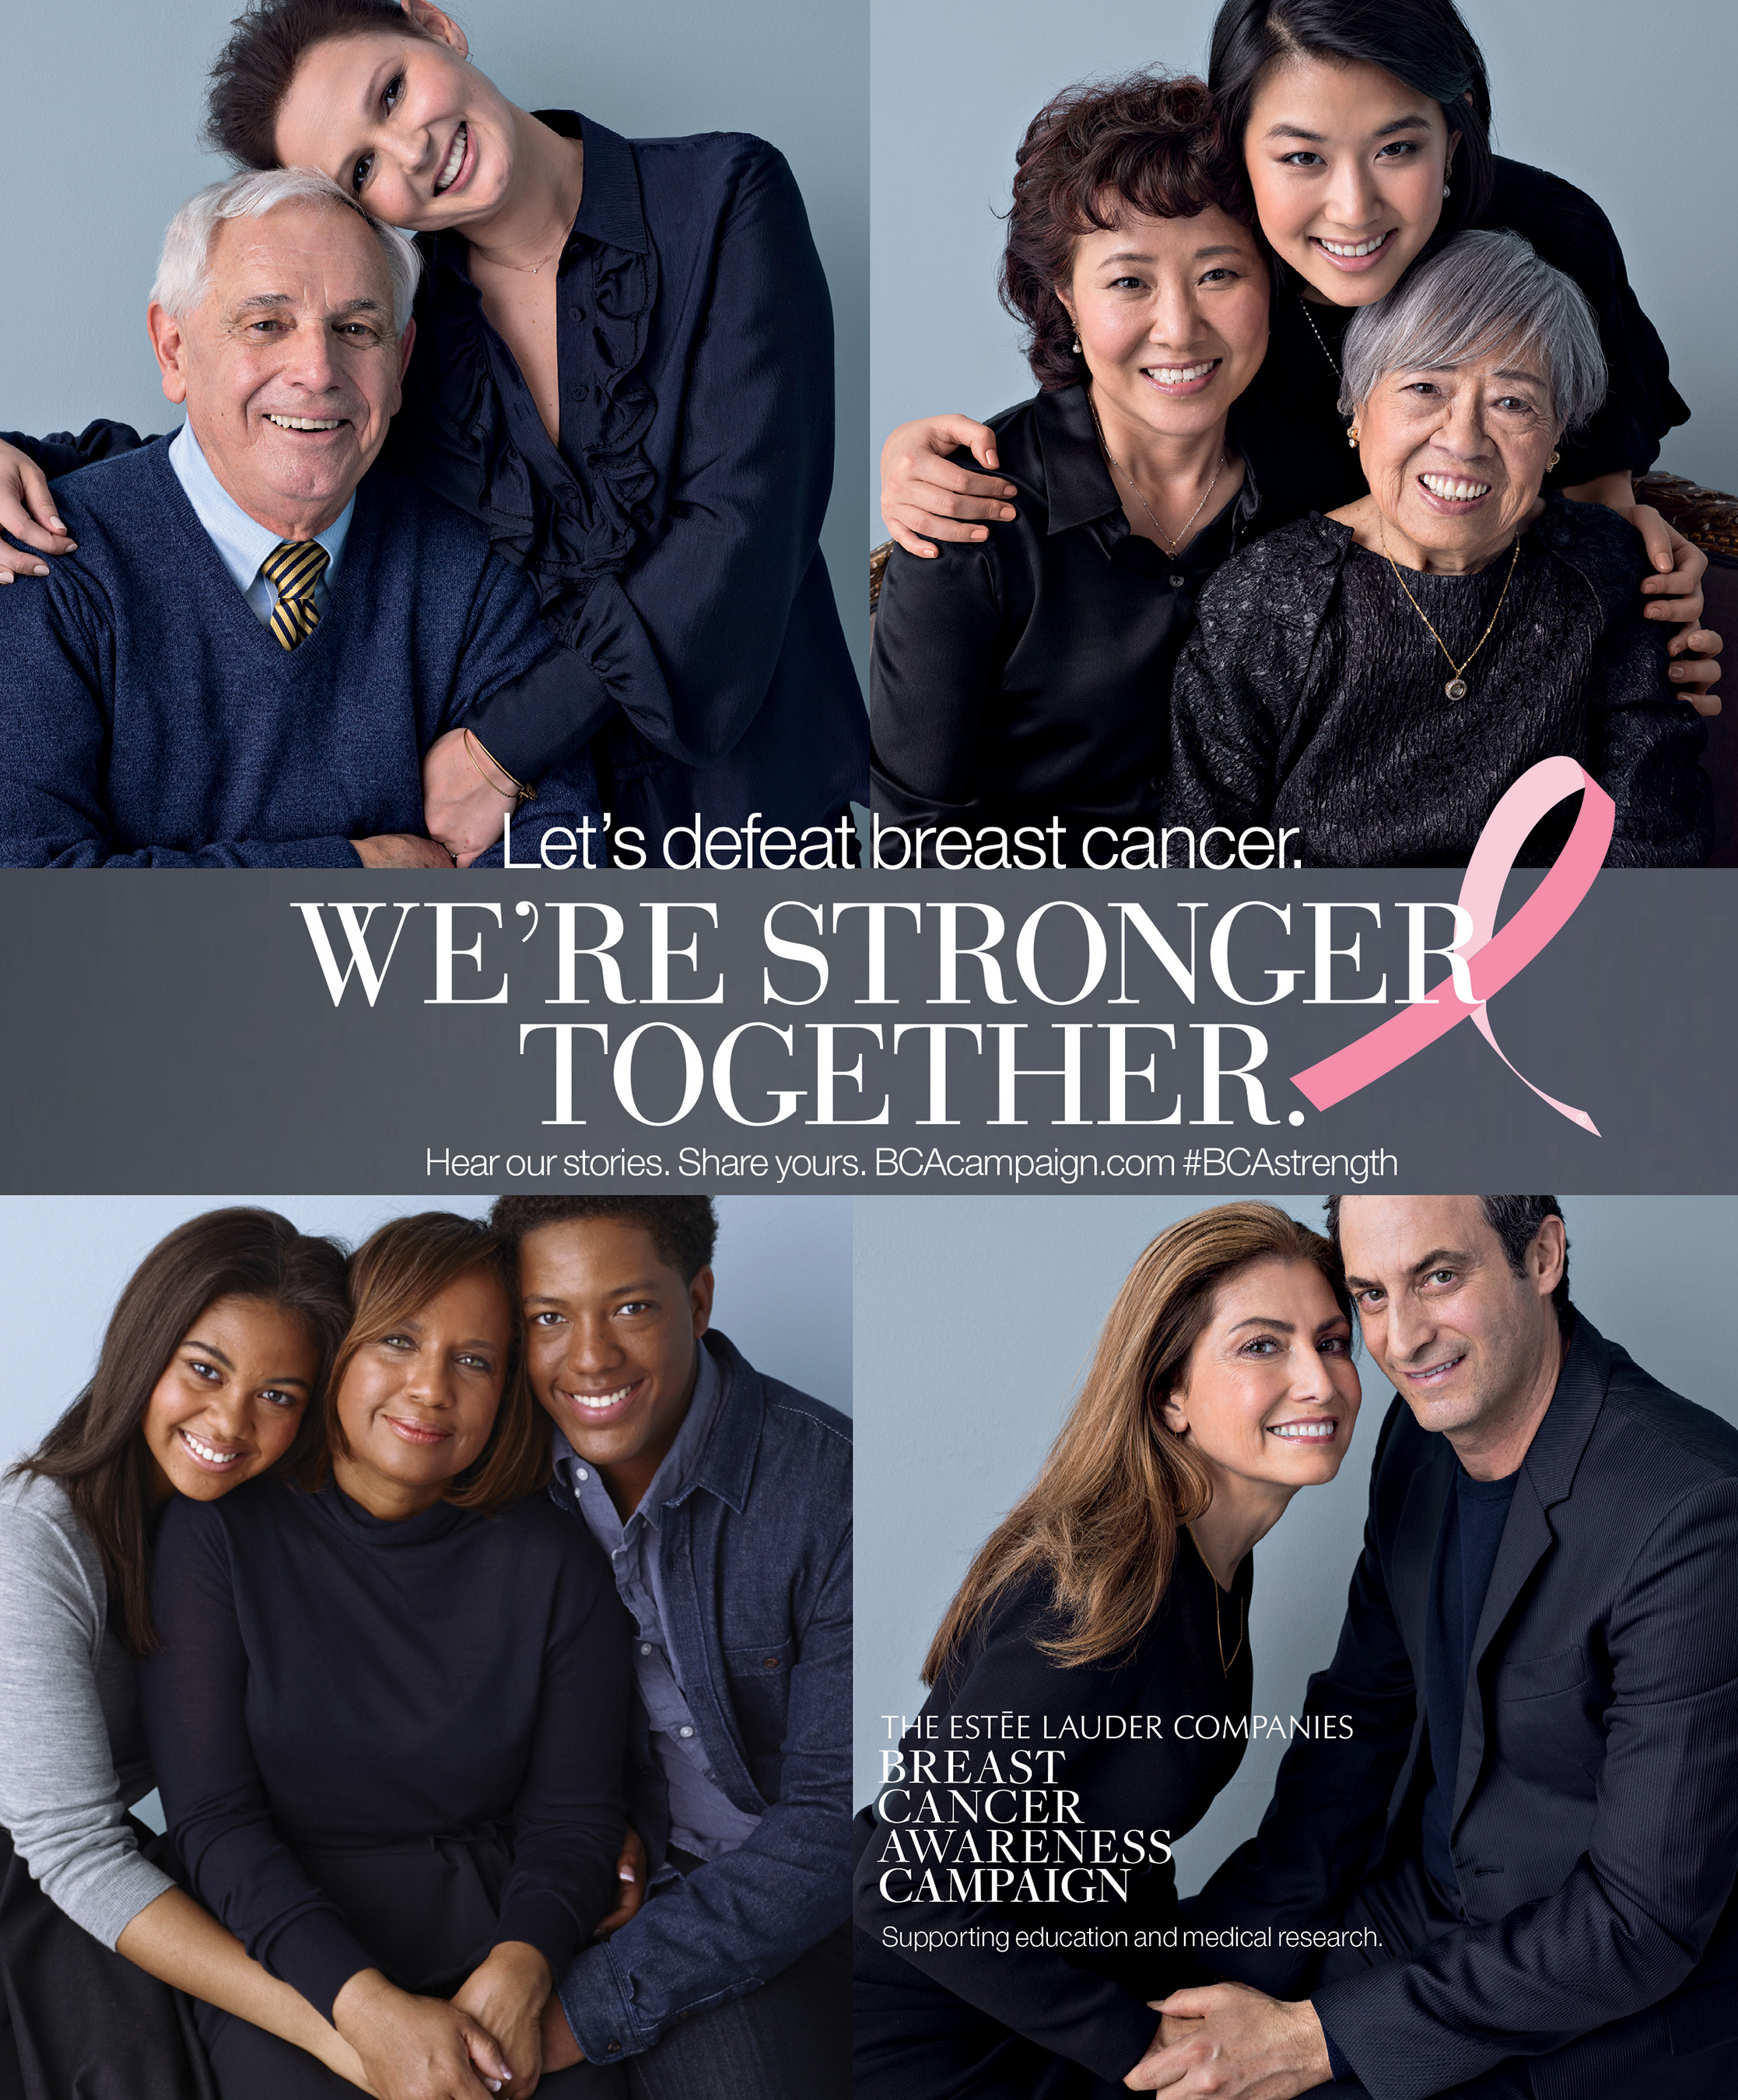 The Estée Lauder Companies' 2014 Breast Cancer Awareness Campaign  encourages people worldwide to take action in the fight against breast  cancer.